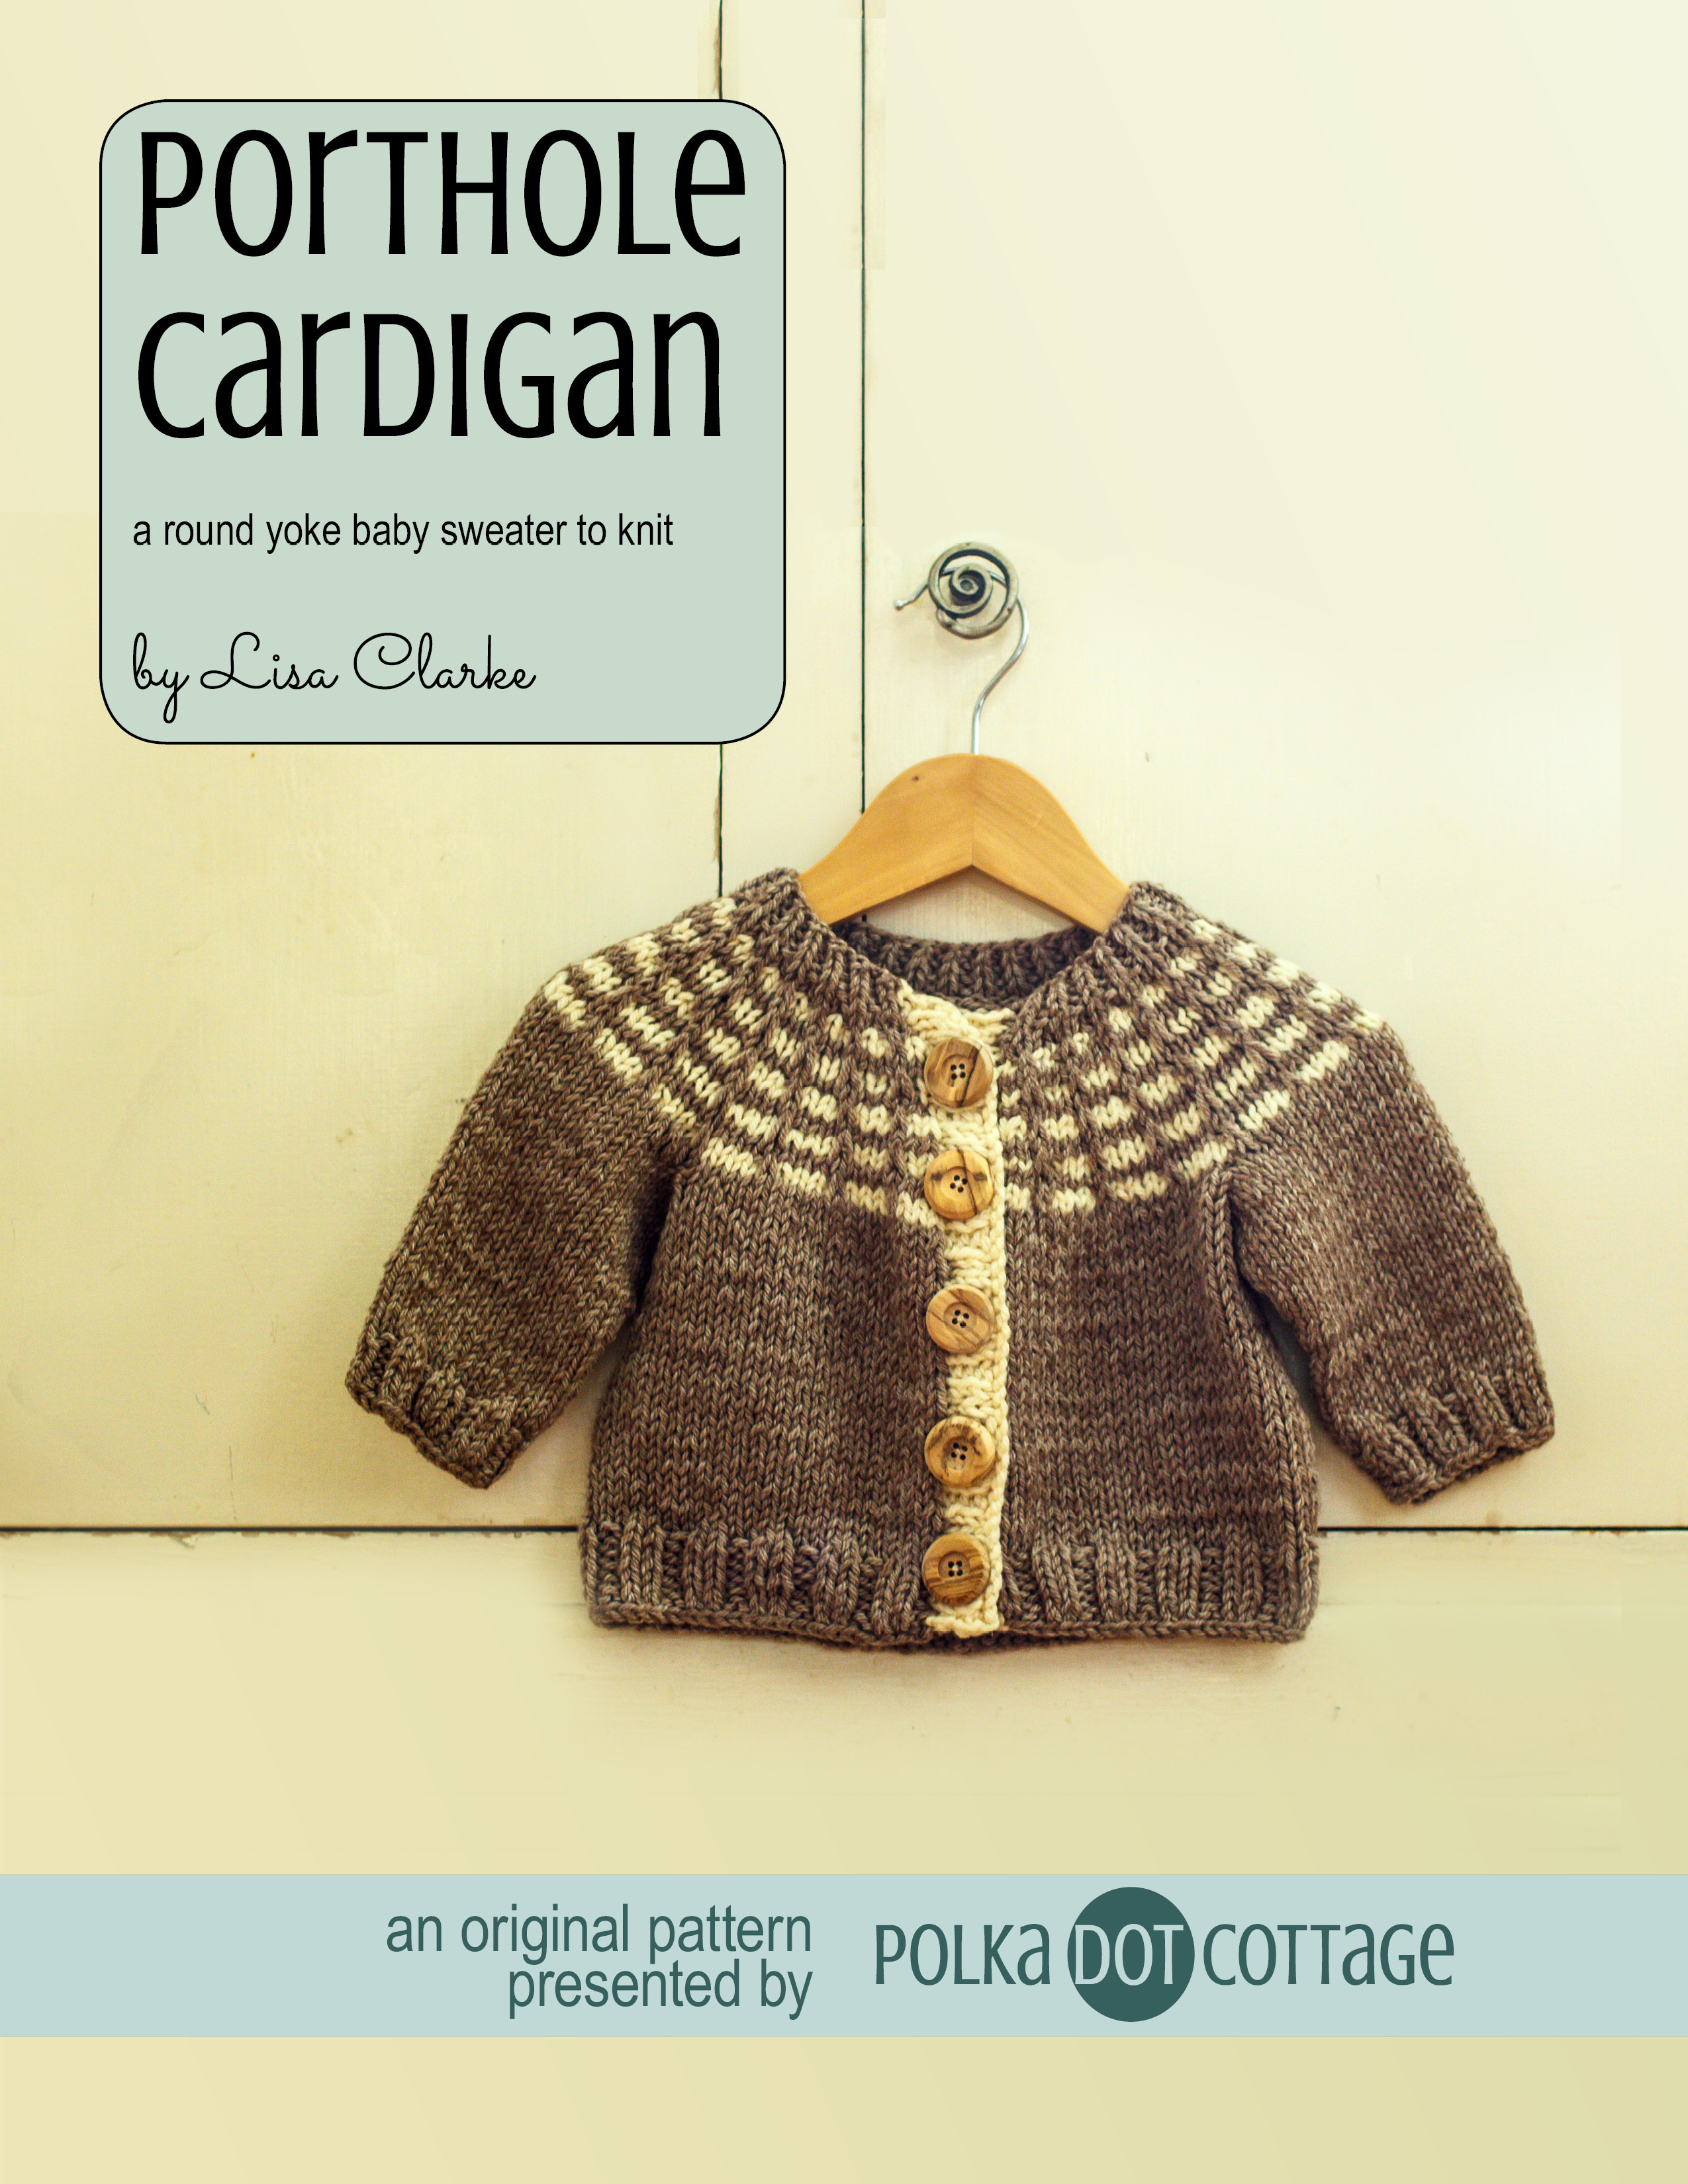 Porthole Cardigan ⋆ Polka Dot Cottage